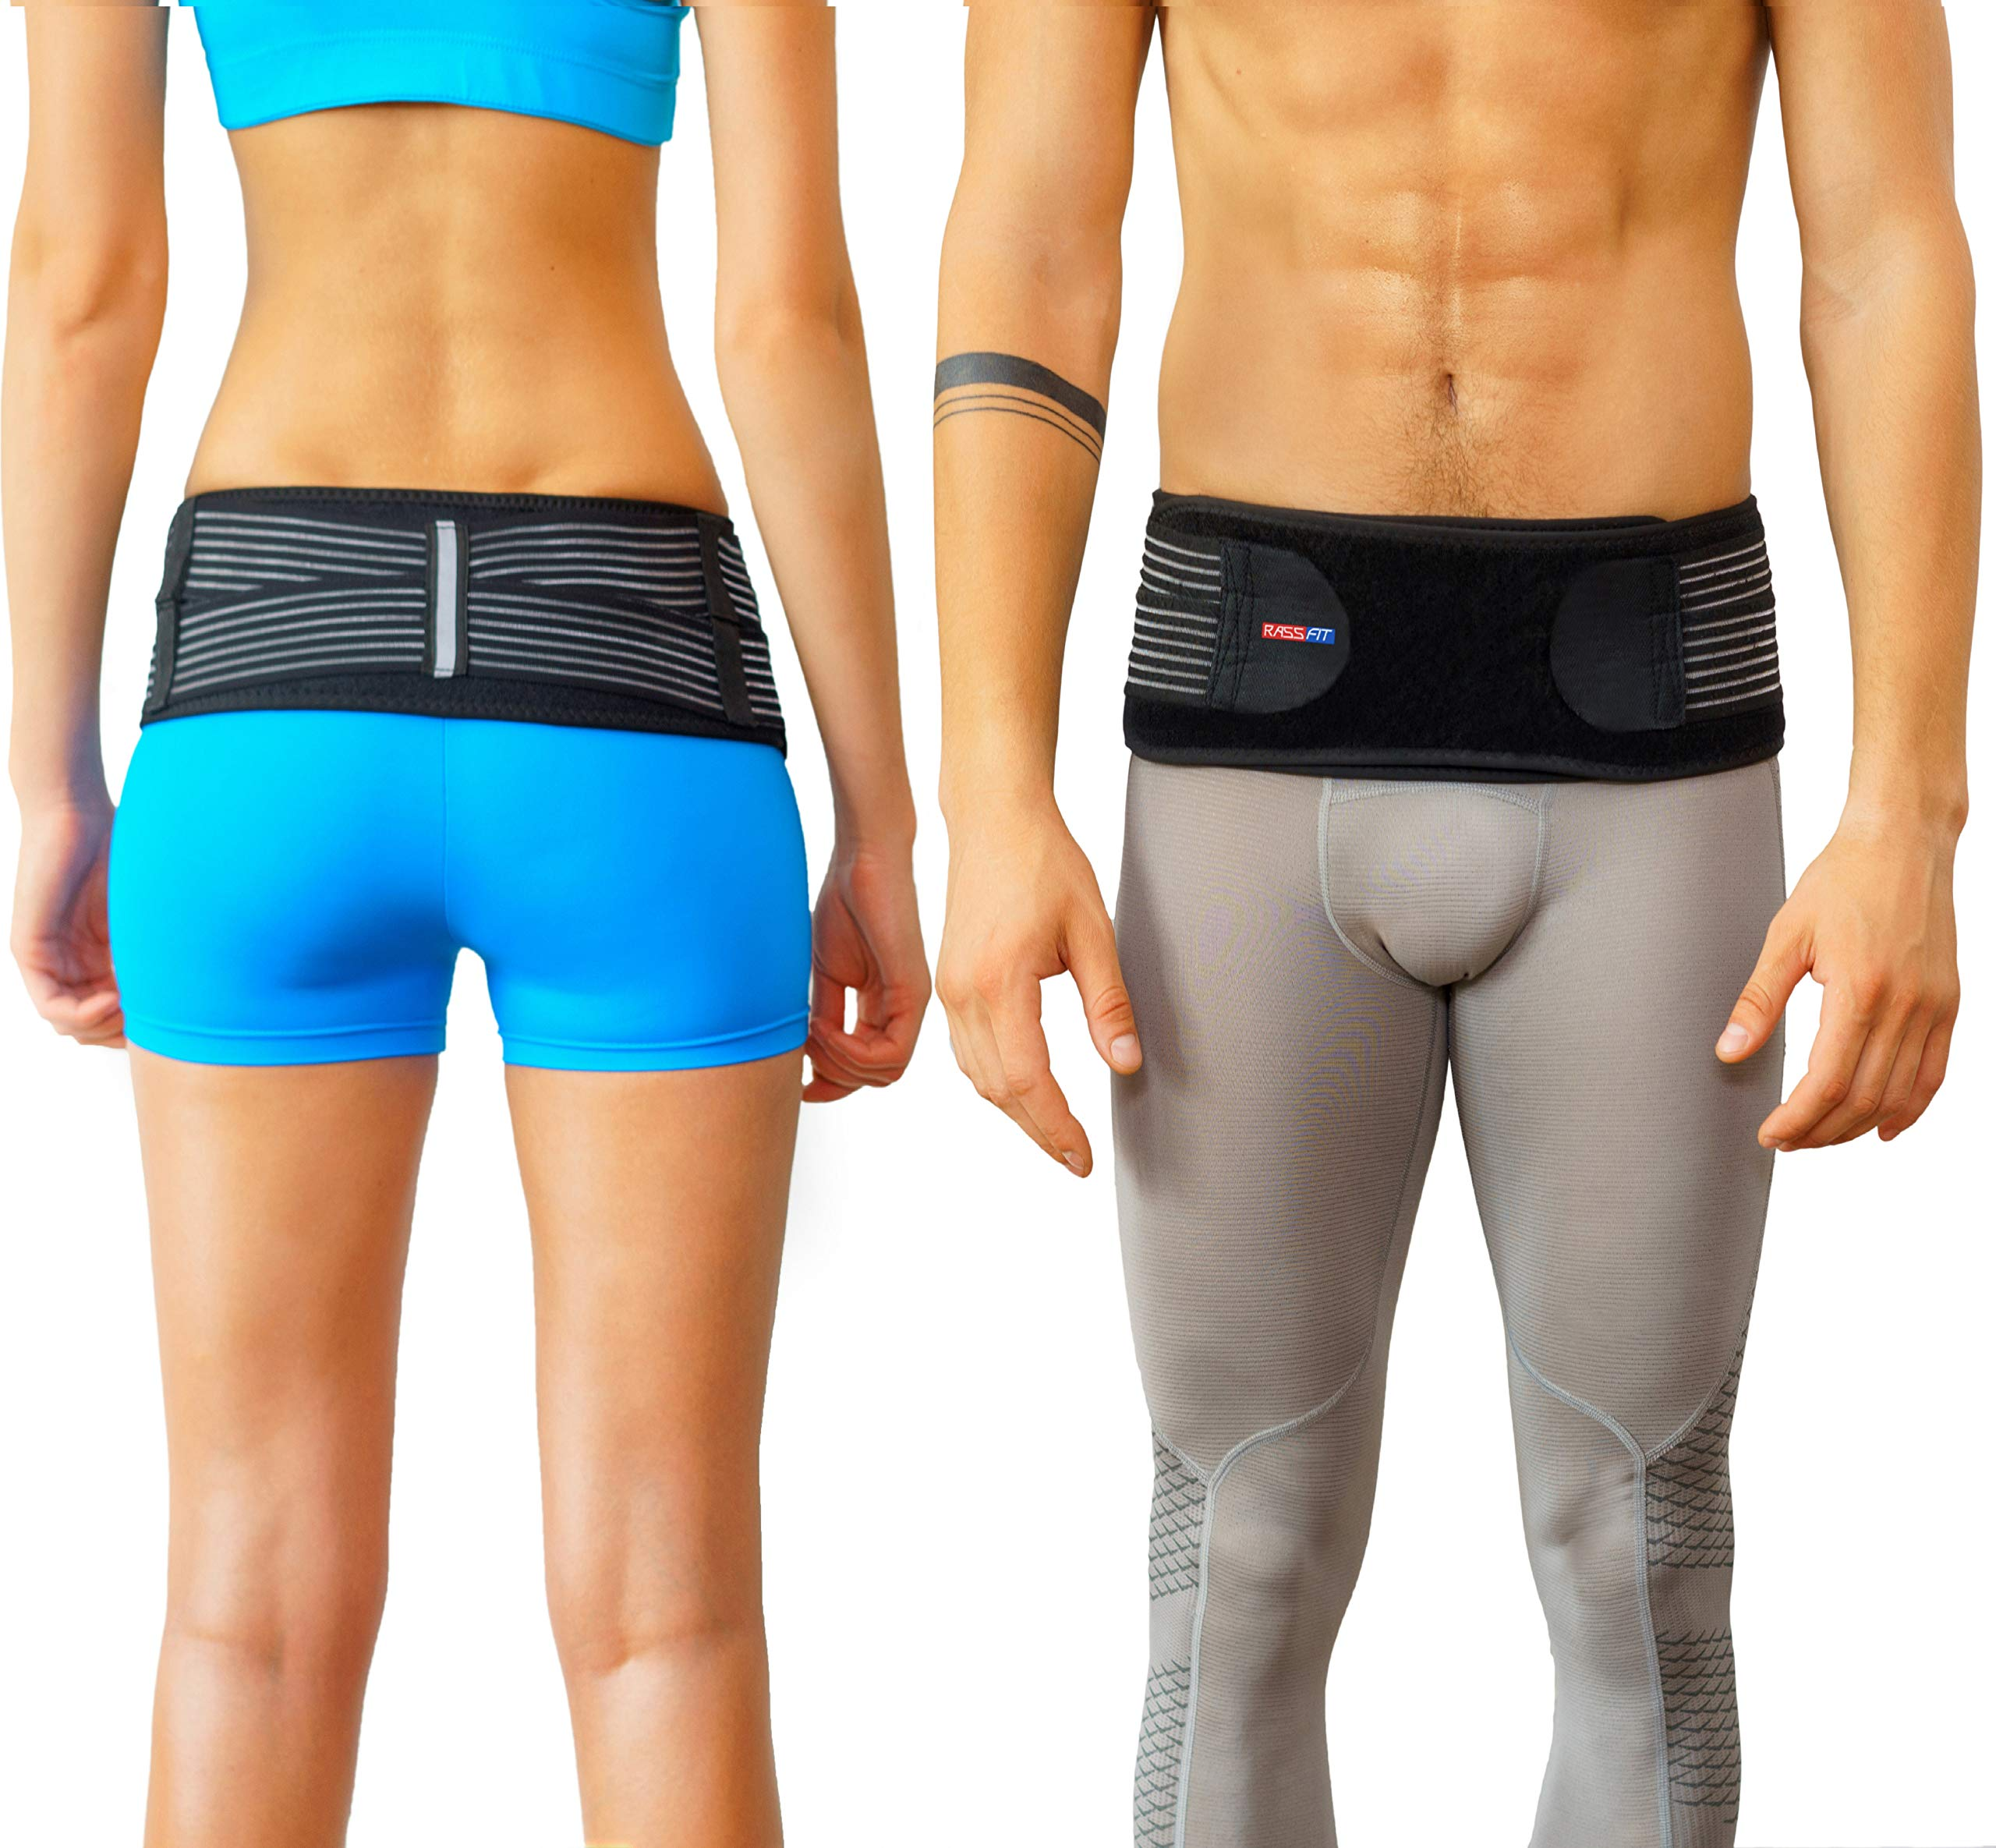 Sacroiliac Joint Brace SI Belt to Relieve Leg/Sciatica Nerve Pain, Lower Back Pain and Lower Spine and Hips Pain | Breathable, Comfortable, Anti-Slip Back Braces to Reduce Joint Inflammation